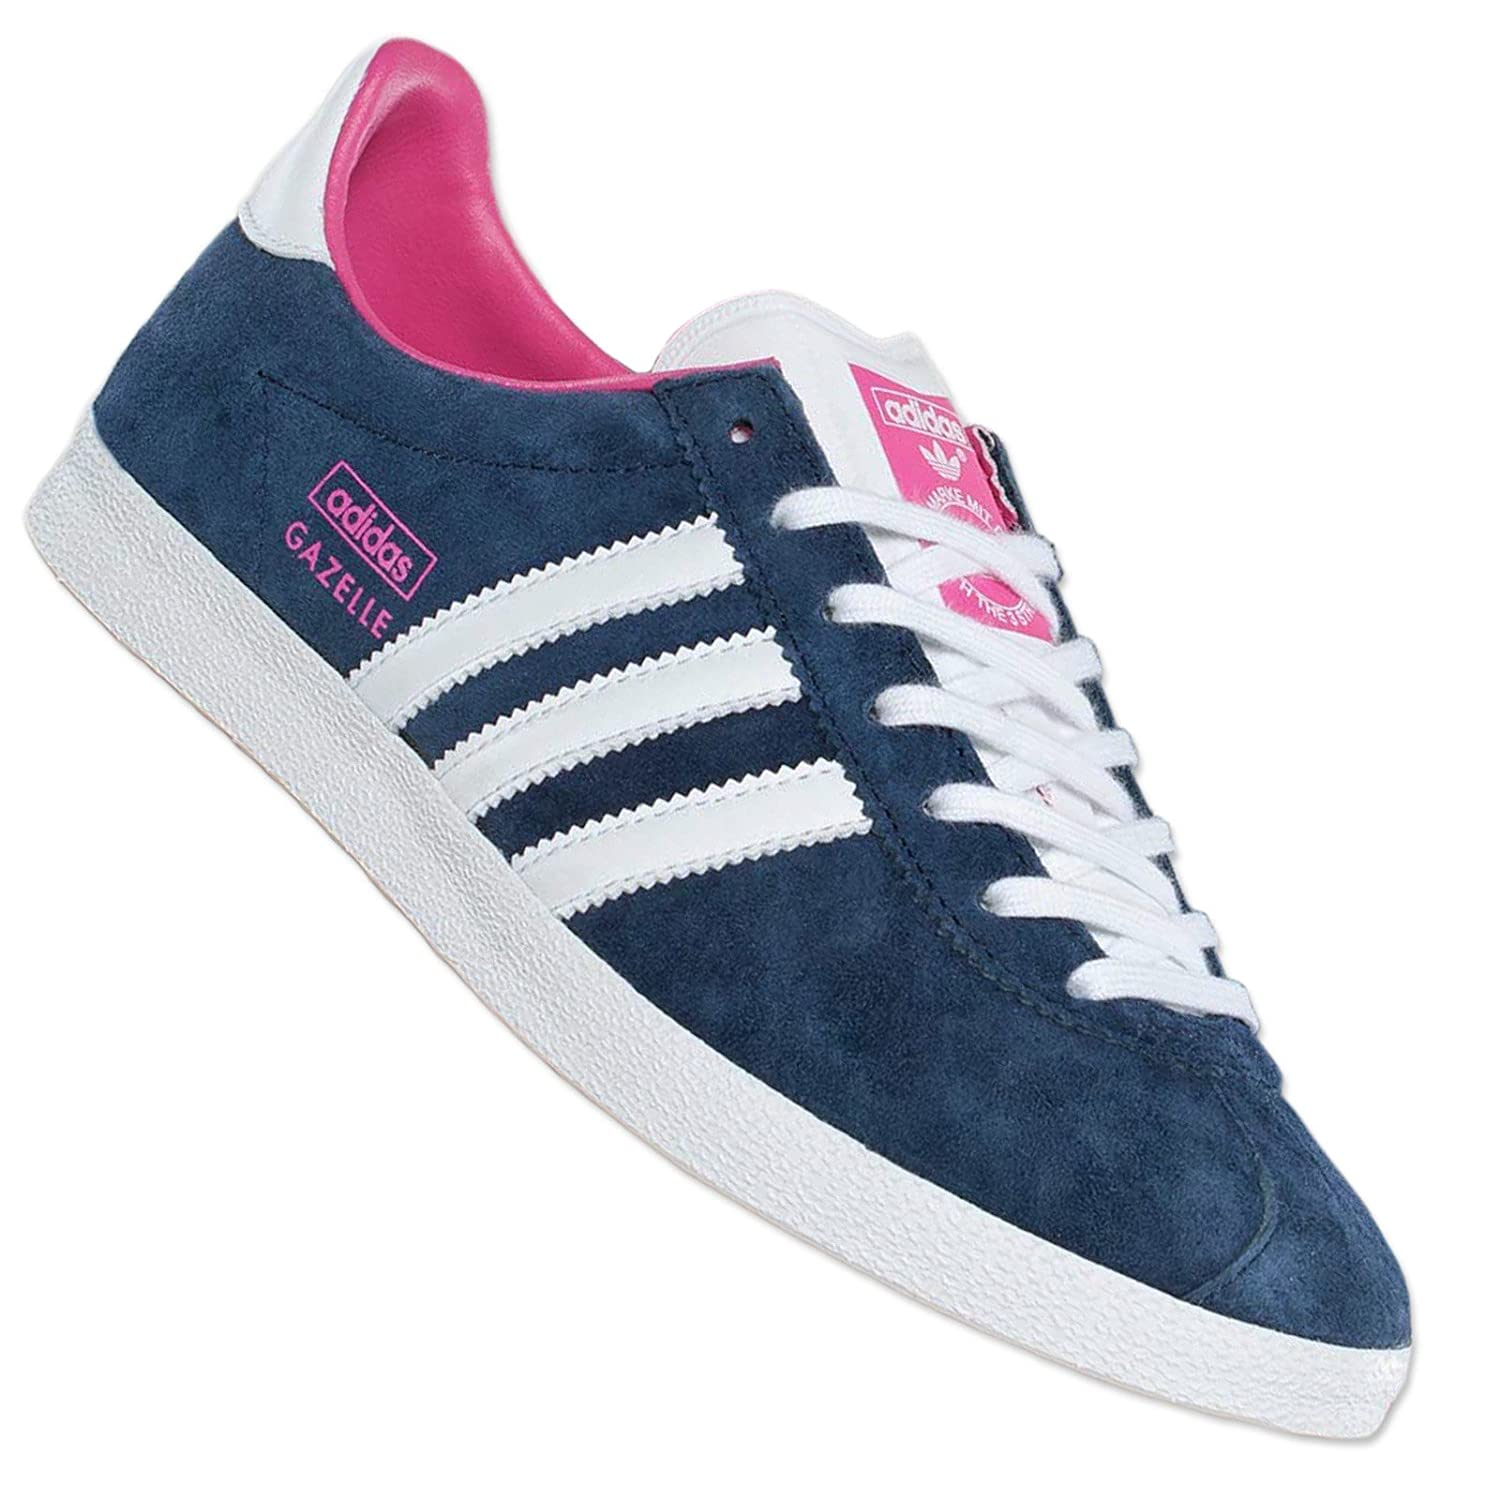 adidas Originals Gazelle OG Women's trainers Just Nice Things